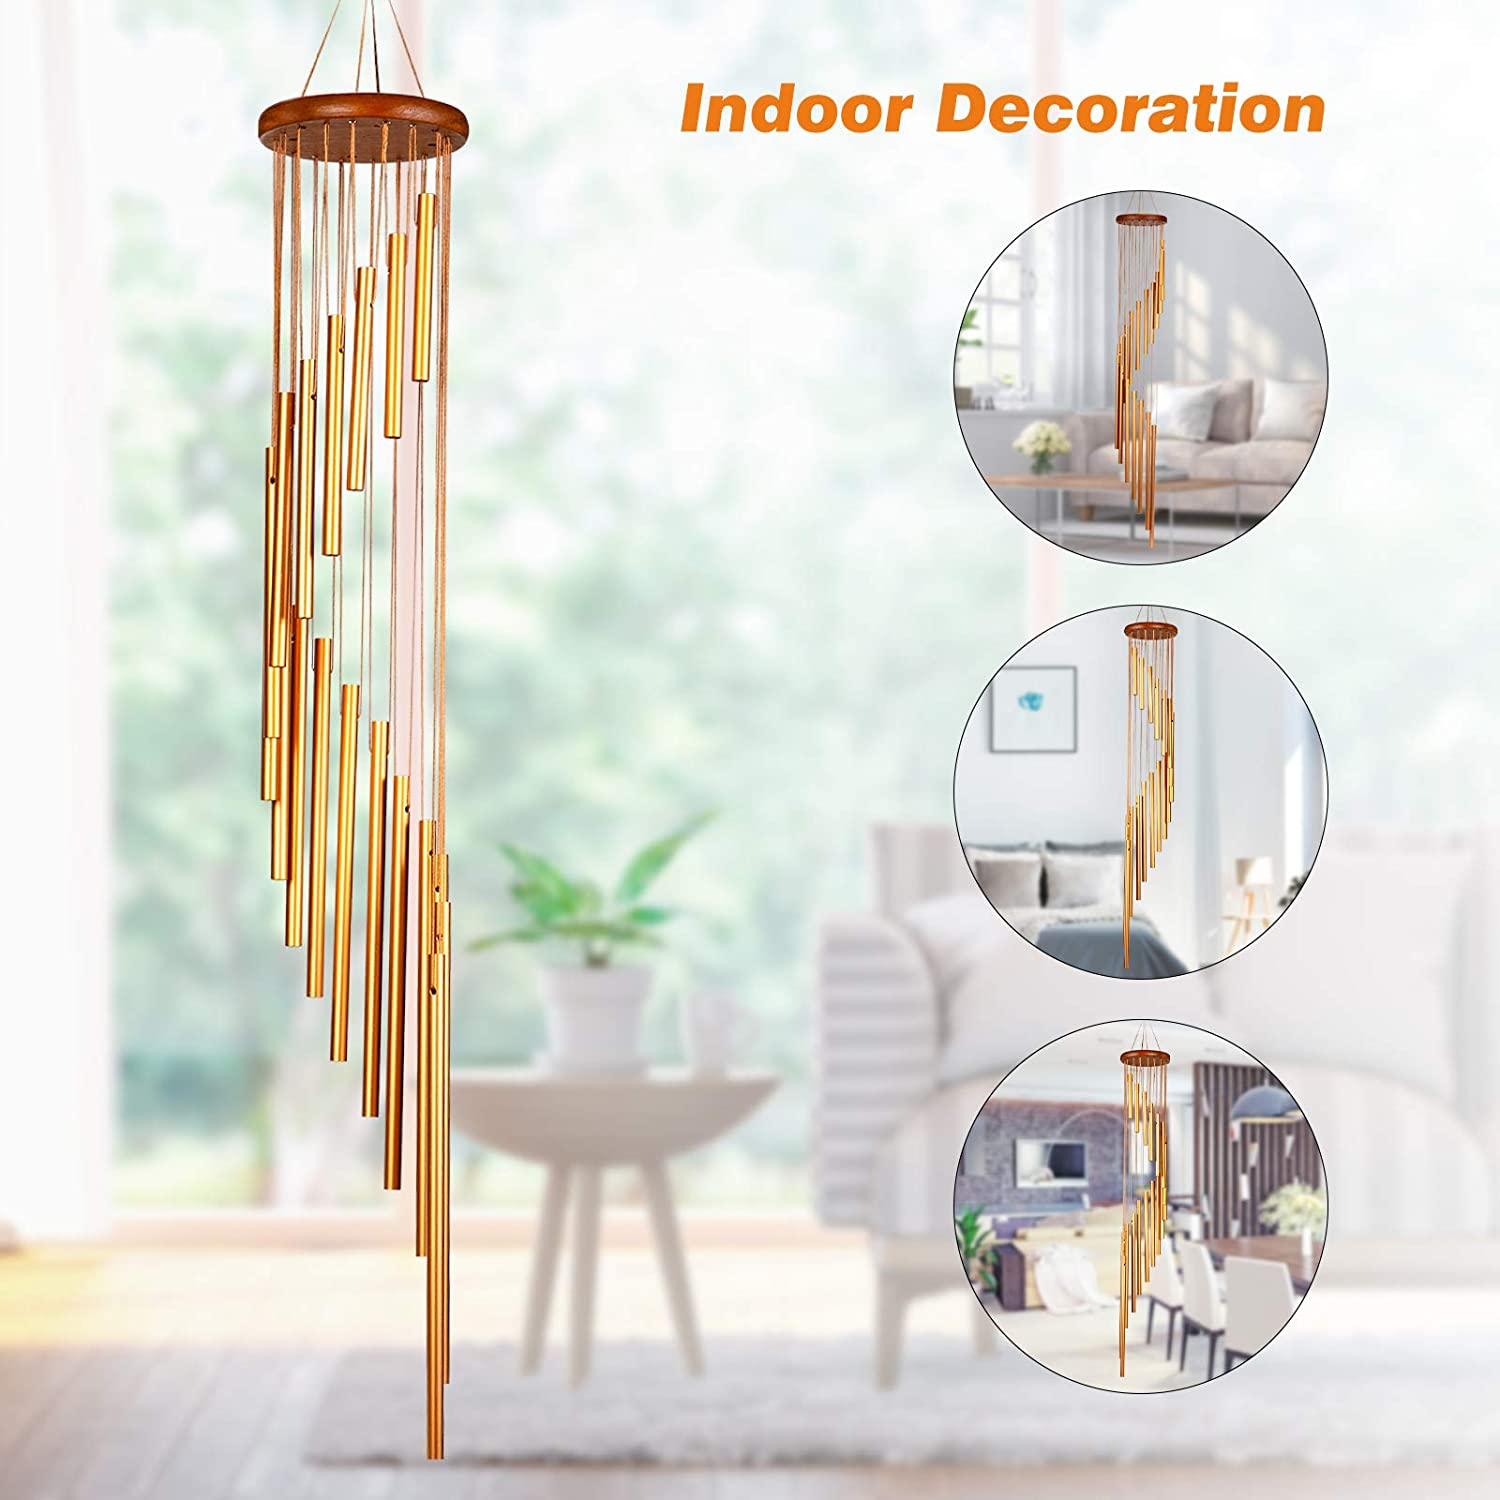 36 Inches Wind Bell With18 Aluminum Alloy Tubes /& 3 S-Hooks Best Gift or Outdoor Decor for Garden//Yard//Patio//Porch//Home Memorial Wind Chimes Outdoor Martvex Wind Chimes for Outside Golden